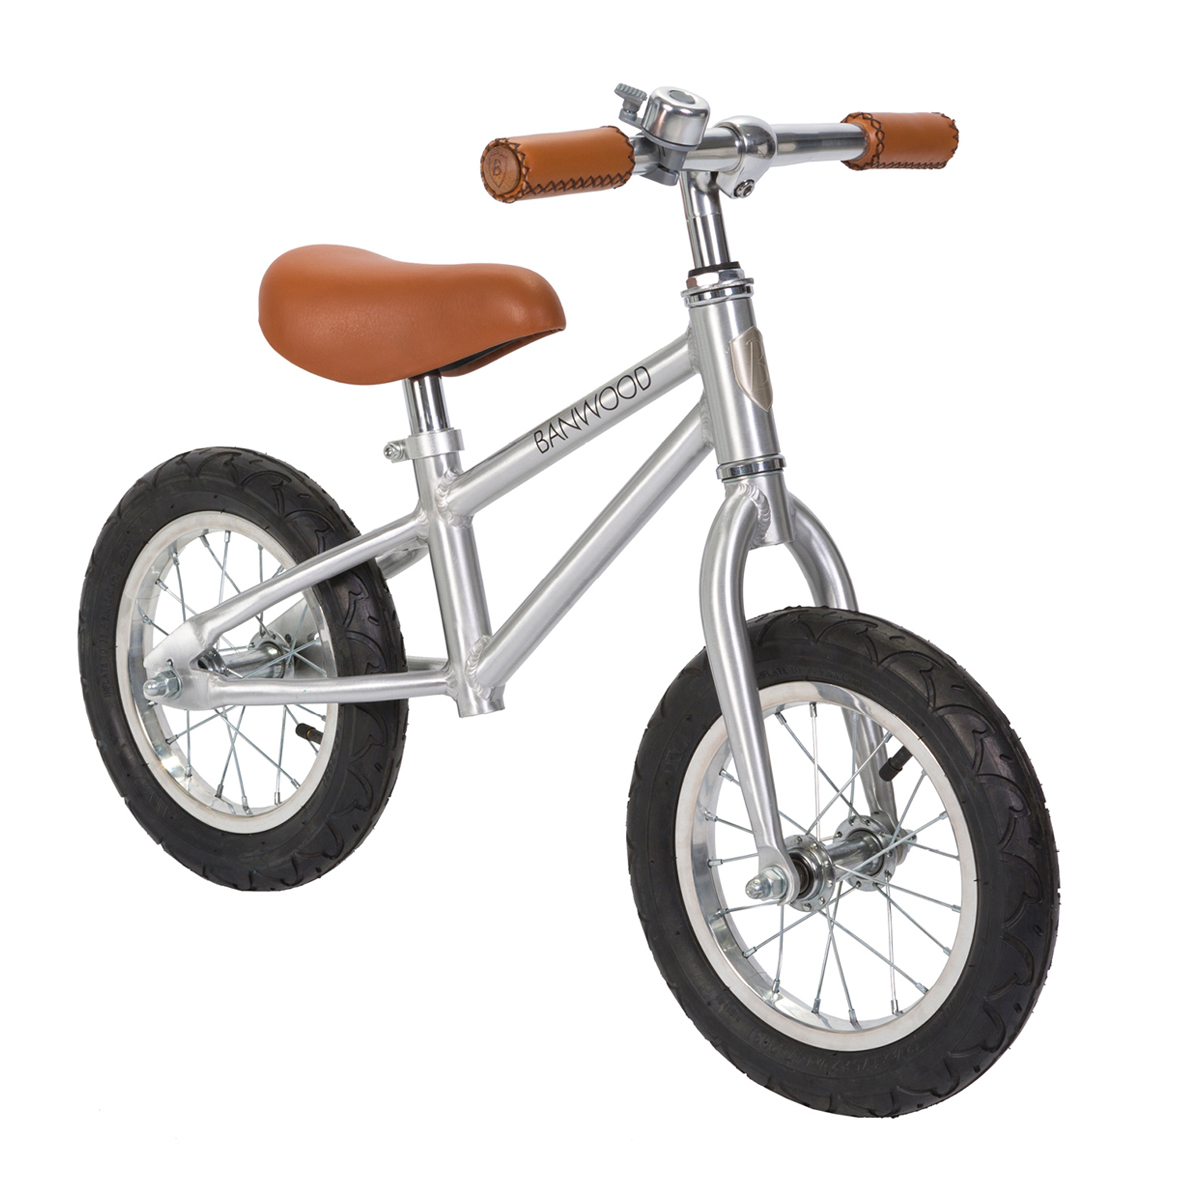 Banwood Bikes First Go! Balance Bike in Chrome